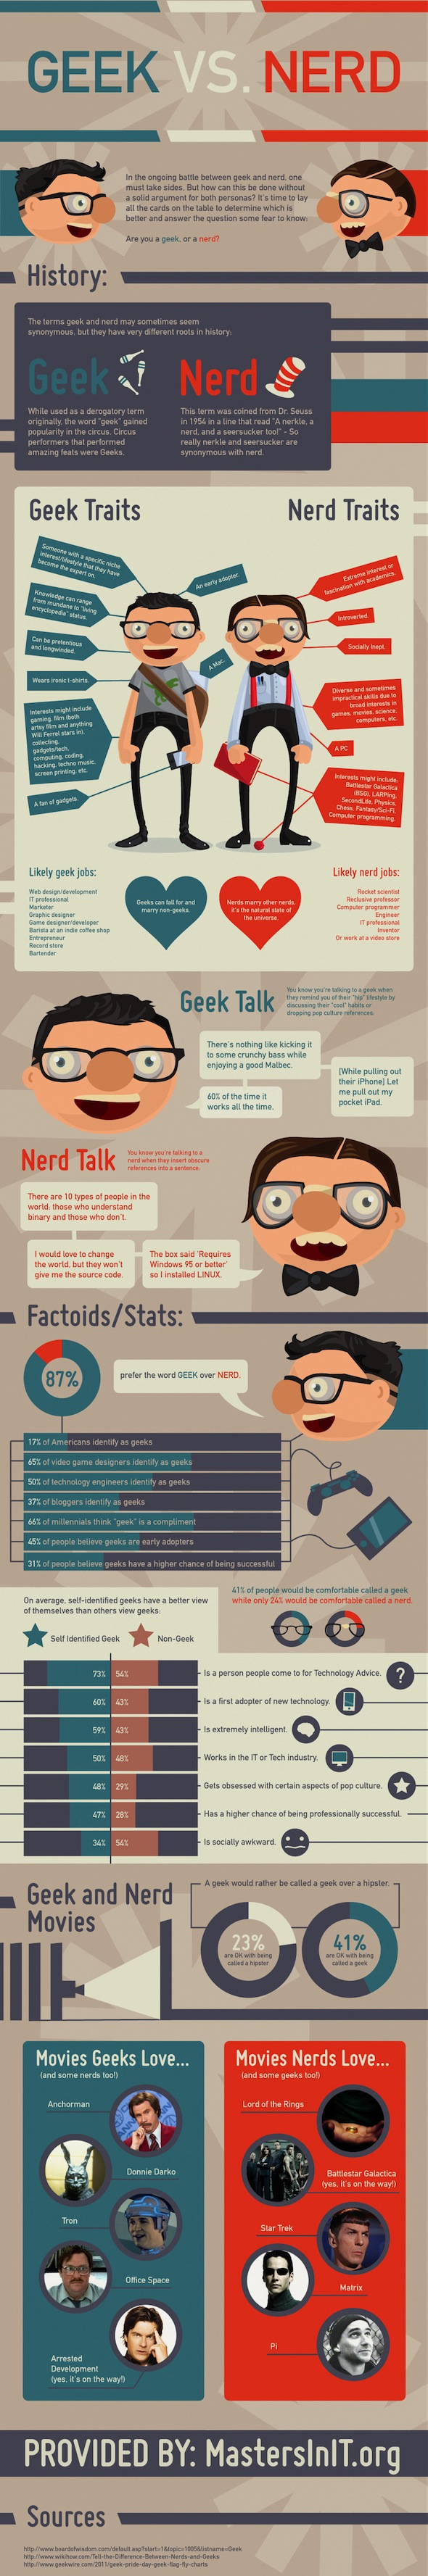 geeks-vs-nerds